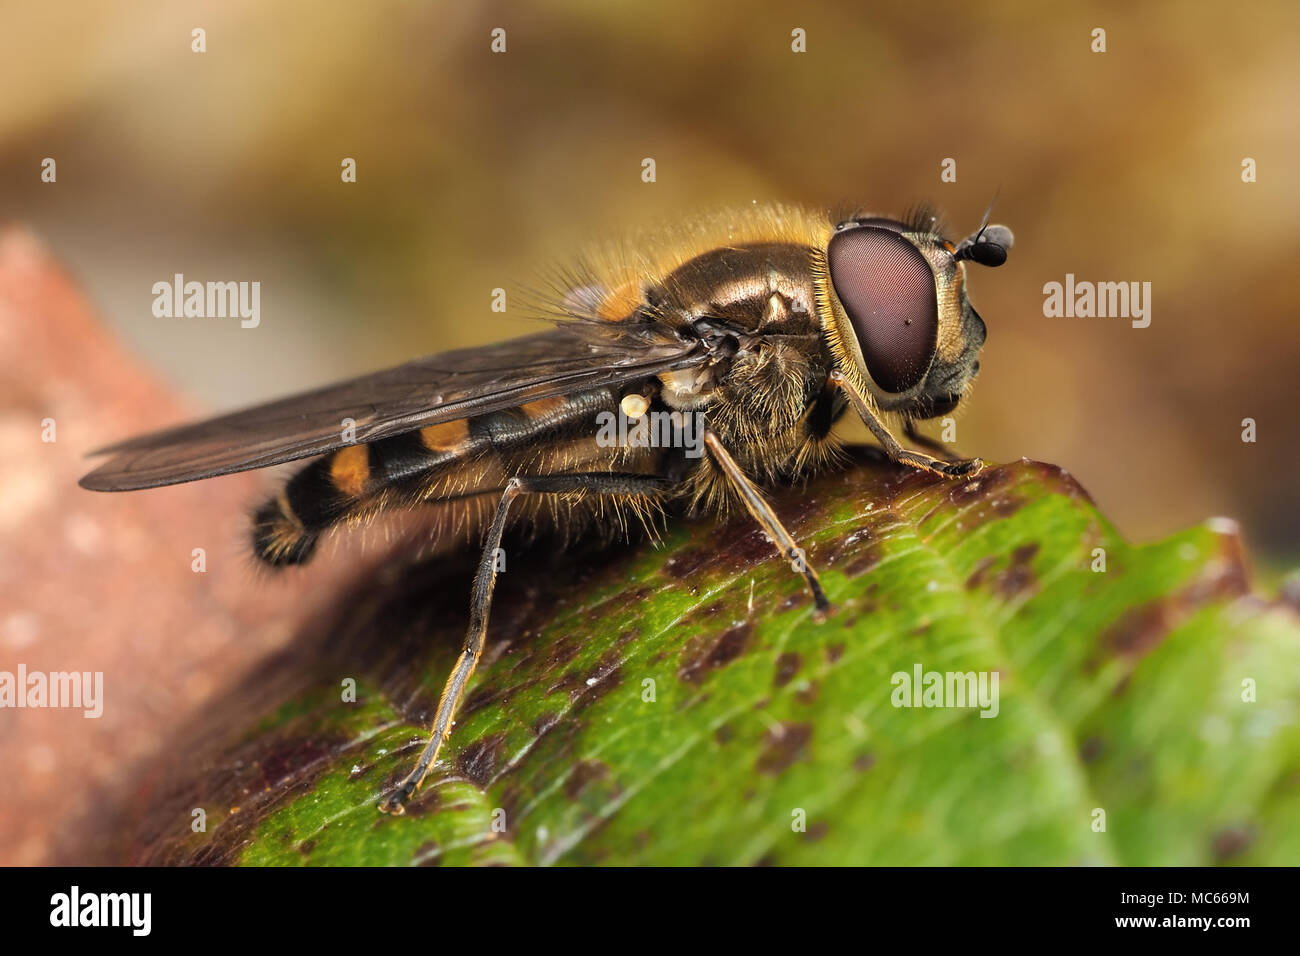 Male Hoverfly (Melangyna lasiophthalma) perched on bramble leaf in coniferous woodland. Tipperary, Ireland Stock Photo